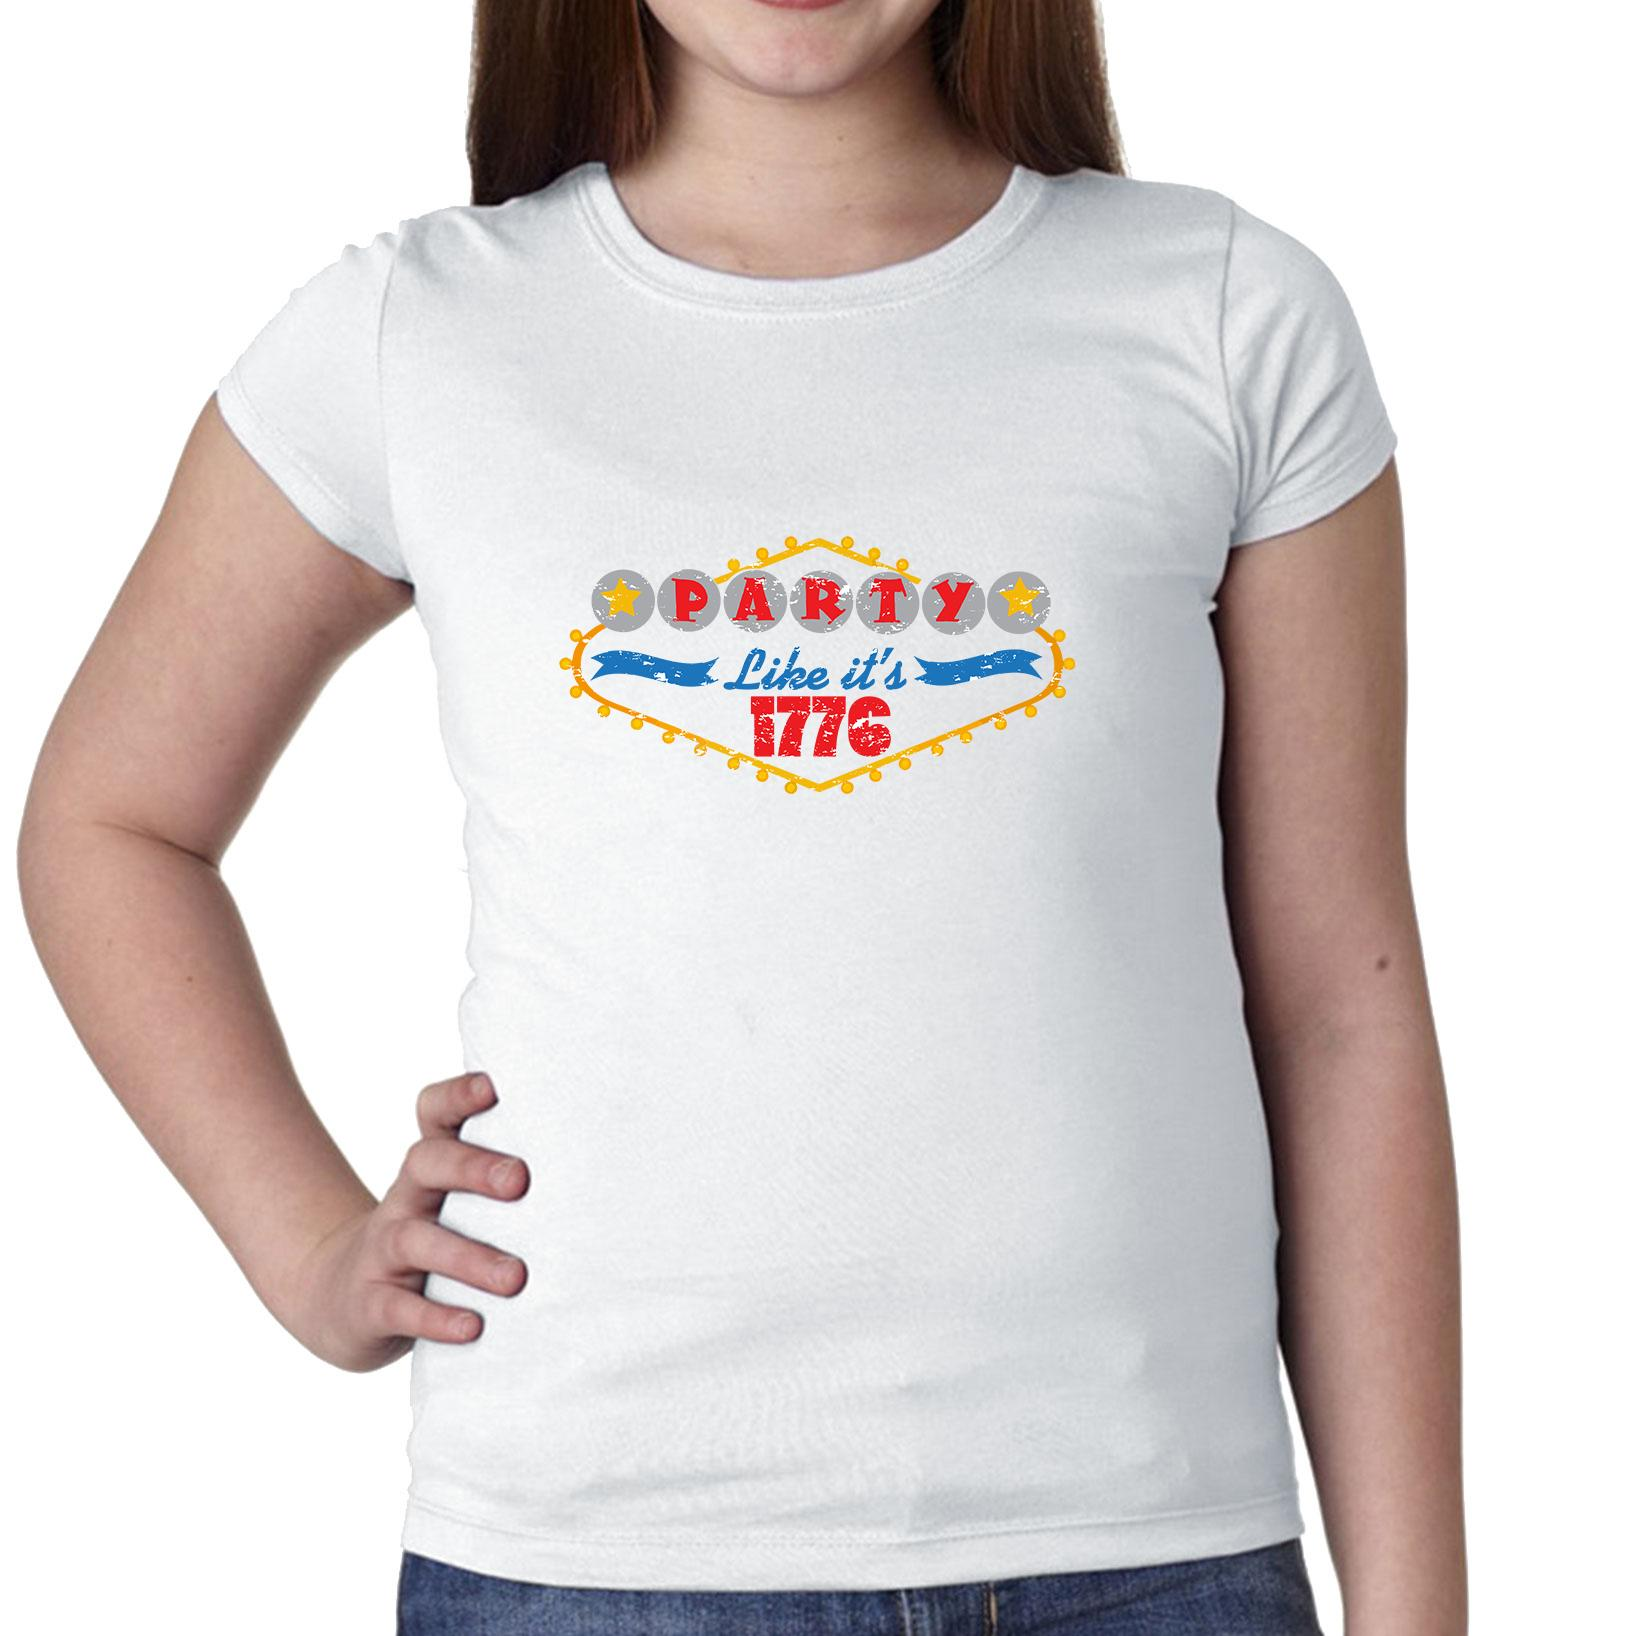 Vegas Iconic Sign - Party Like It's 1776 Girl's Cotton Youth T-Shirt